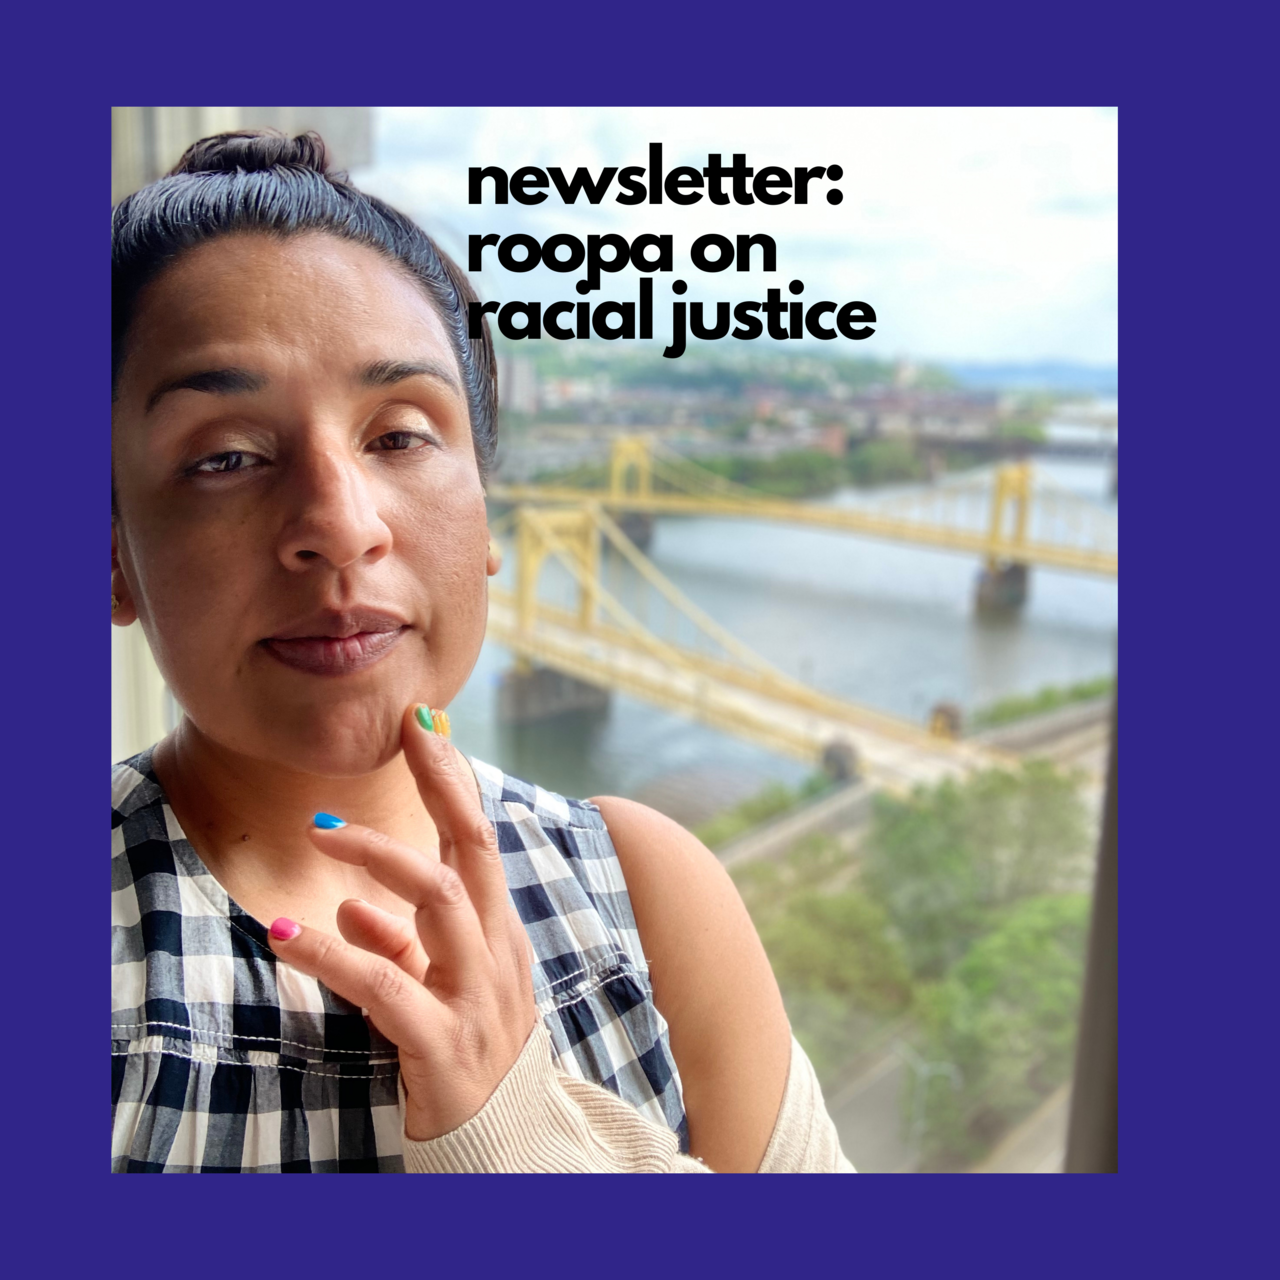 Roopa on Racial Justice